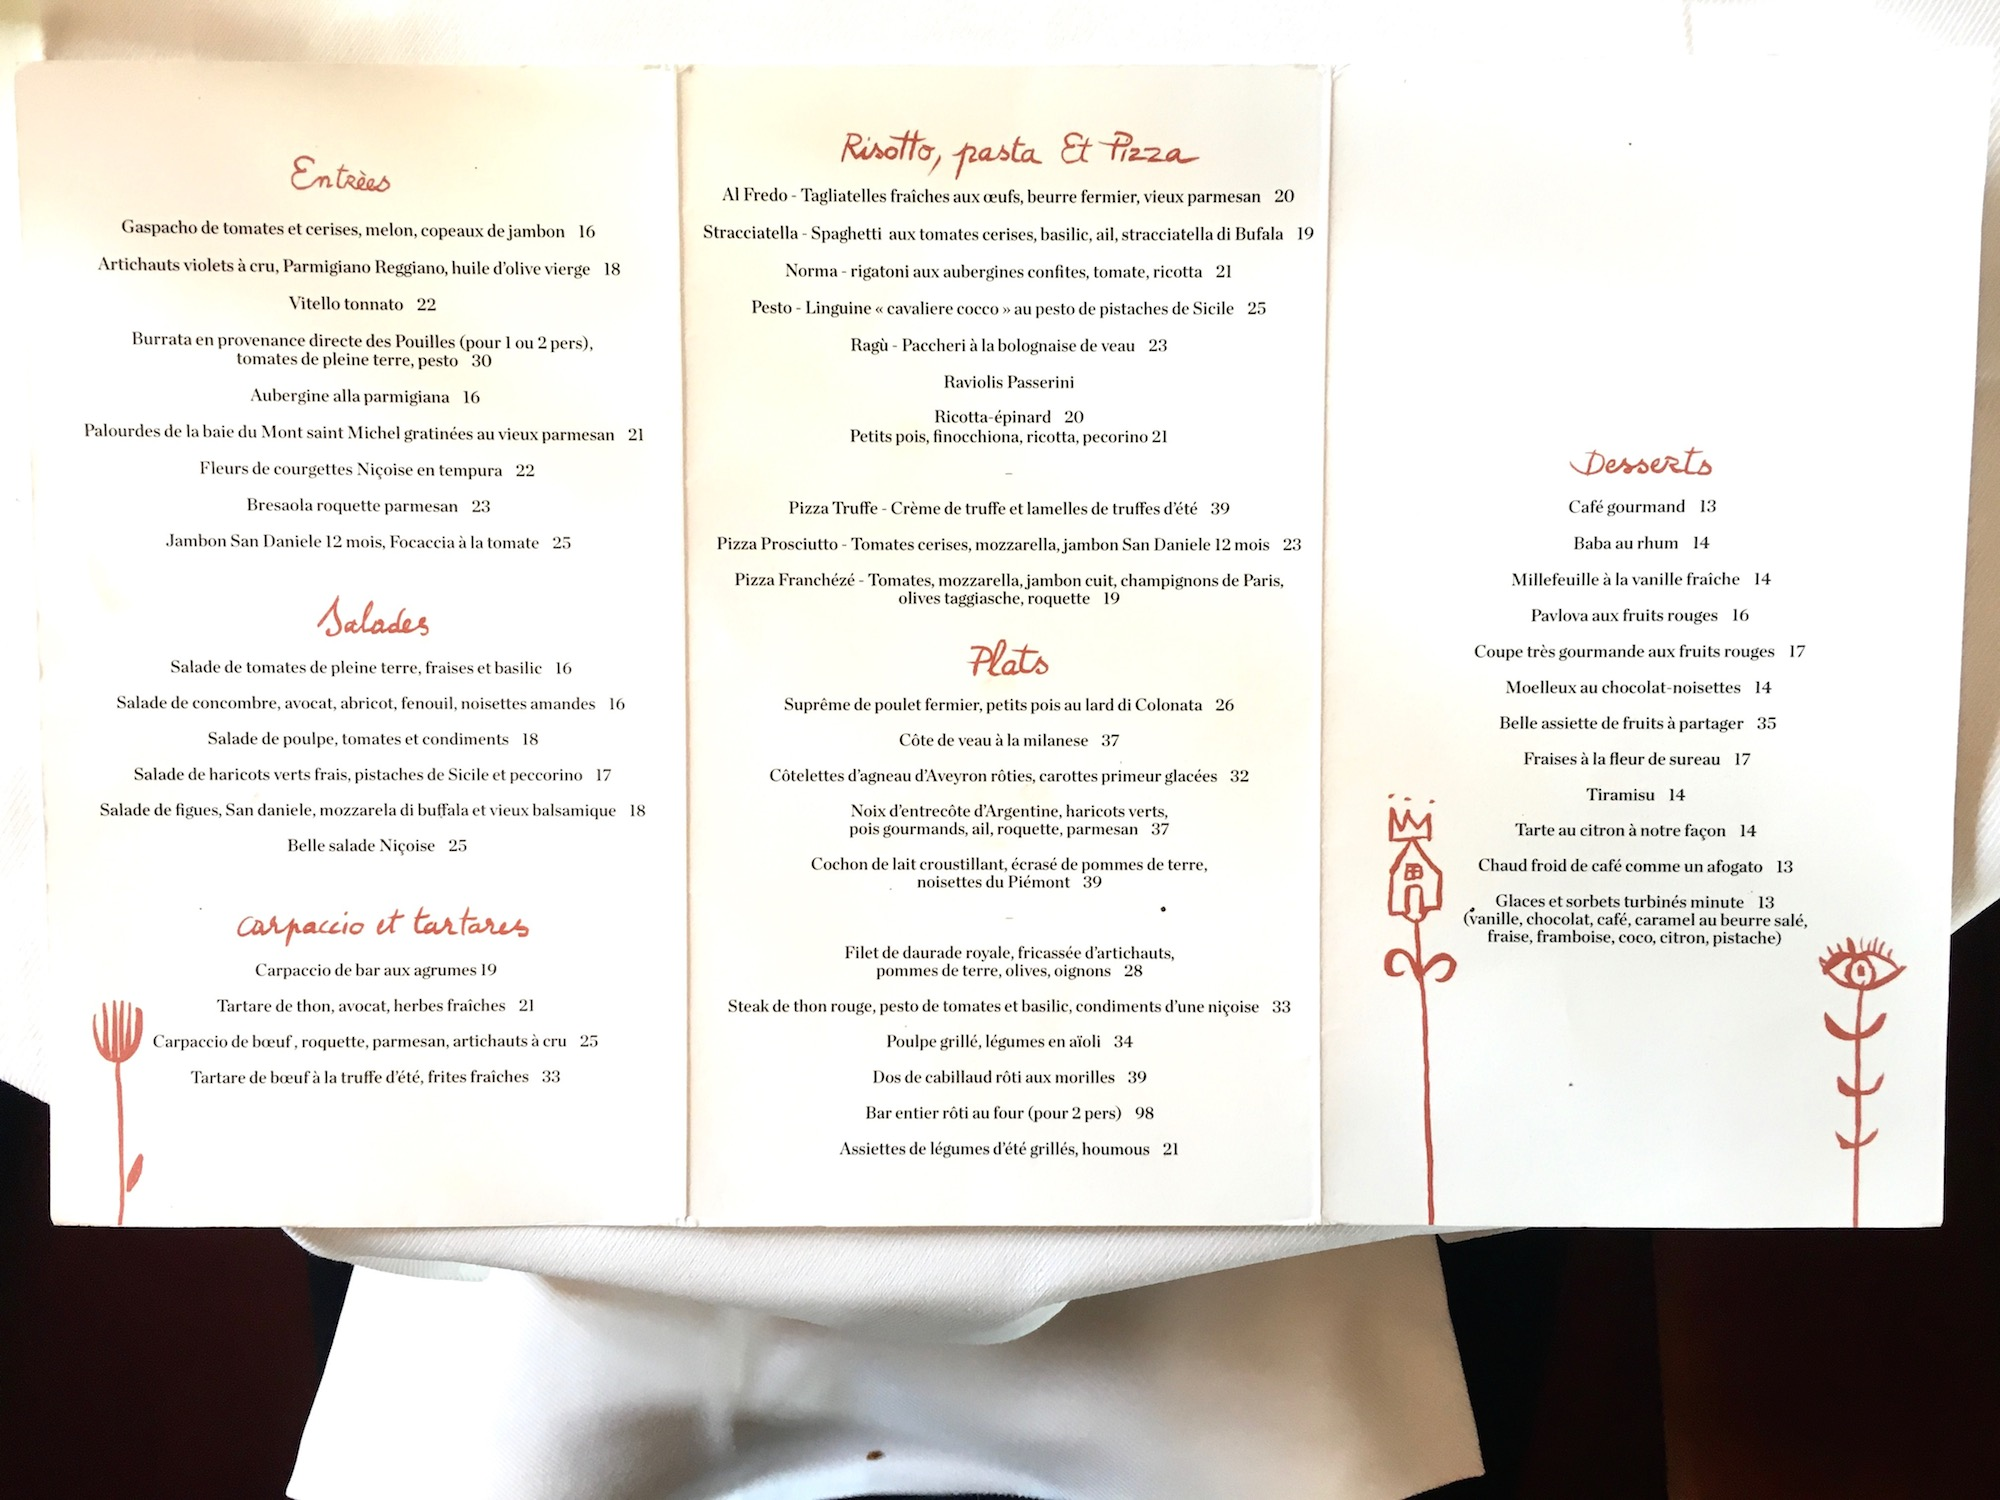 Loulou restaurant is the place to go for Mediterranean food in Paris, as you can see from the menu.